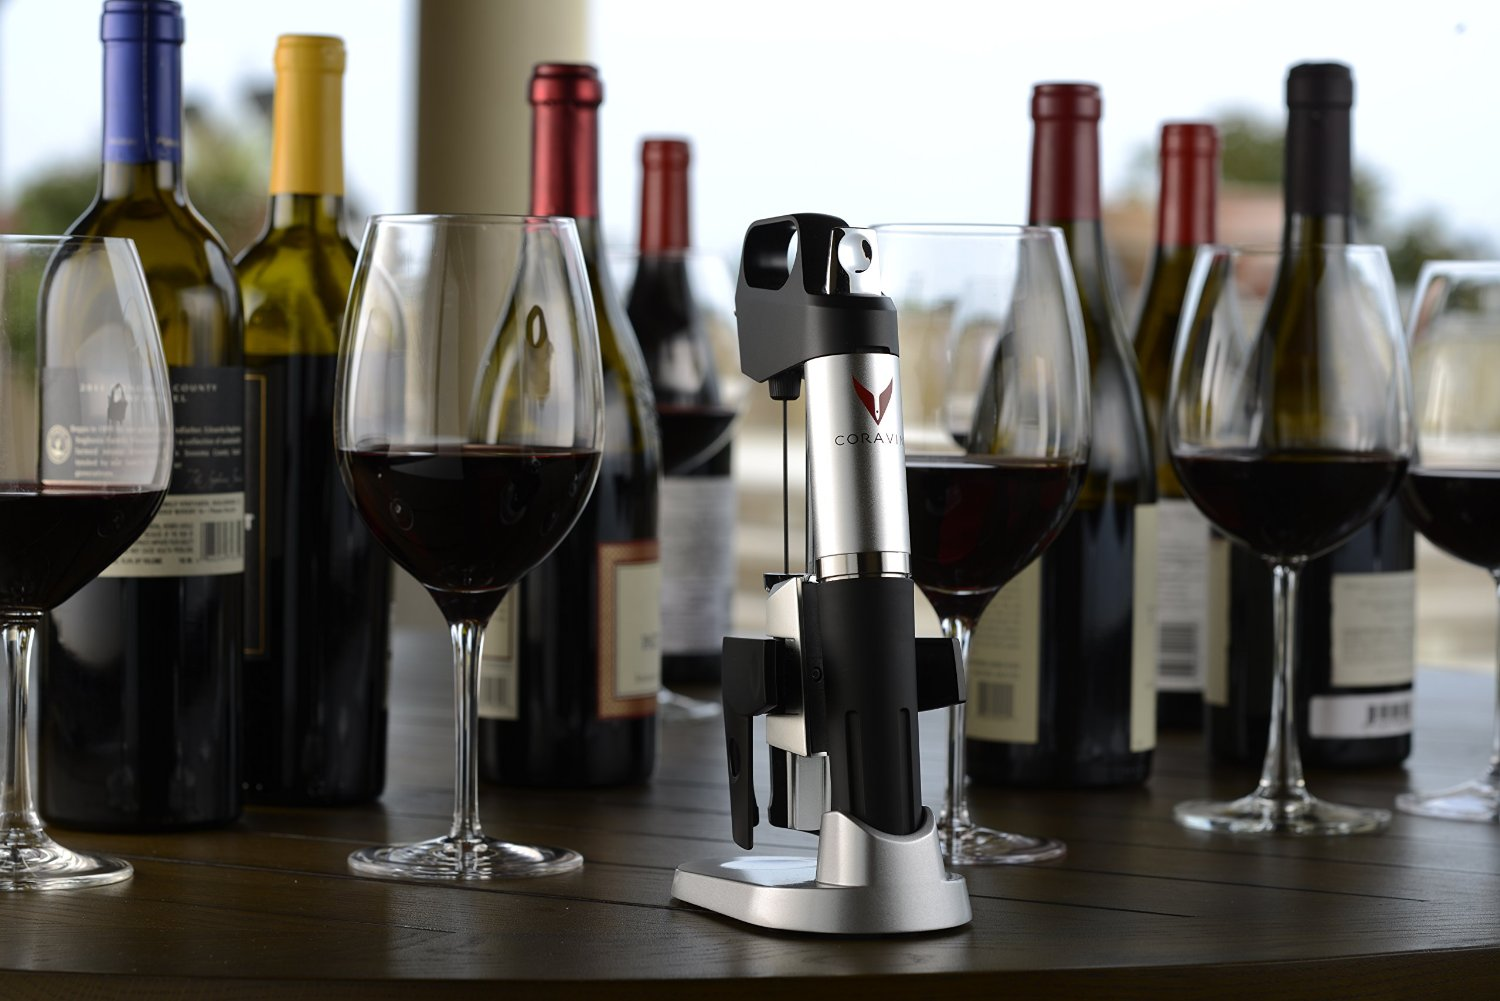 How to Recork Wine with the Coravin Wine System